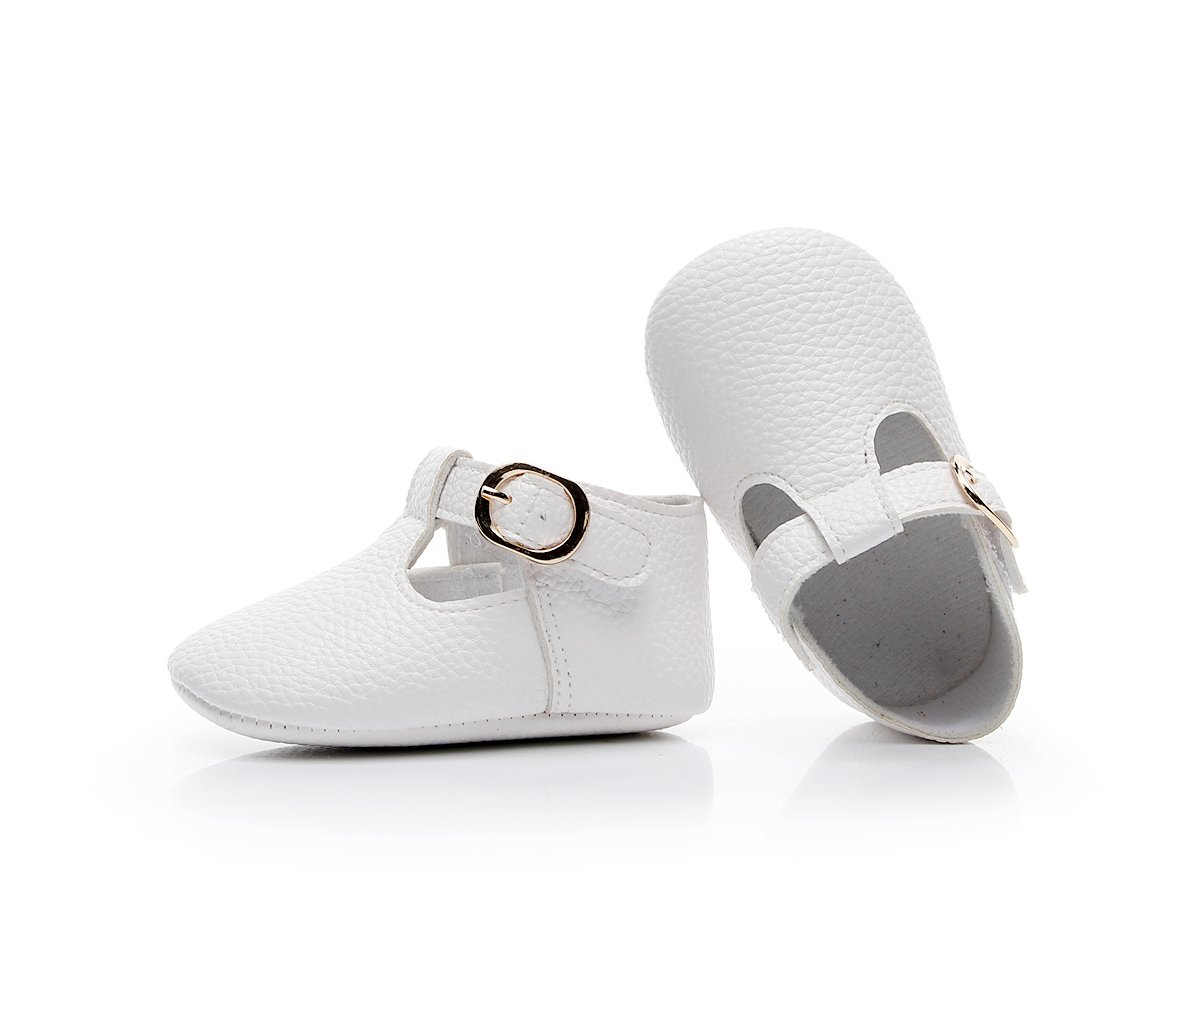 HONGTEYA Baby Girls Pure T-Strap Moccasins - Newborn First Walker Mary Jane PU Soft Soled Shoes (Size:12-18 Months/US 6/5.12''/See Size Chart, White) by HONGTEYA (Image #7)